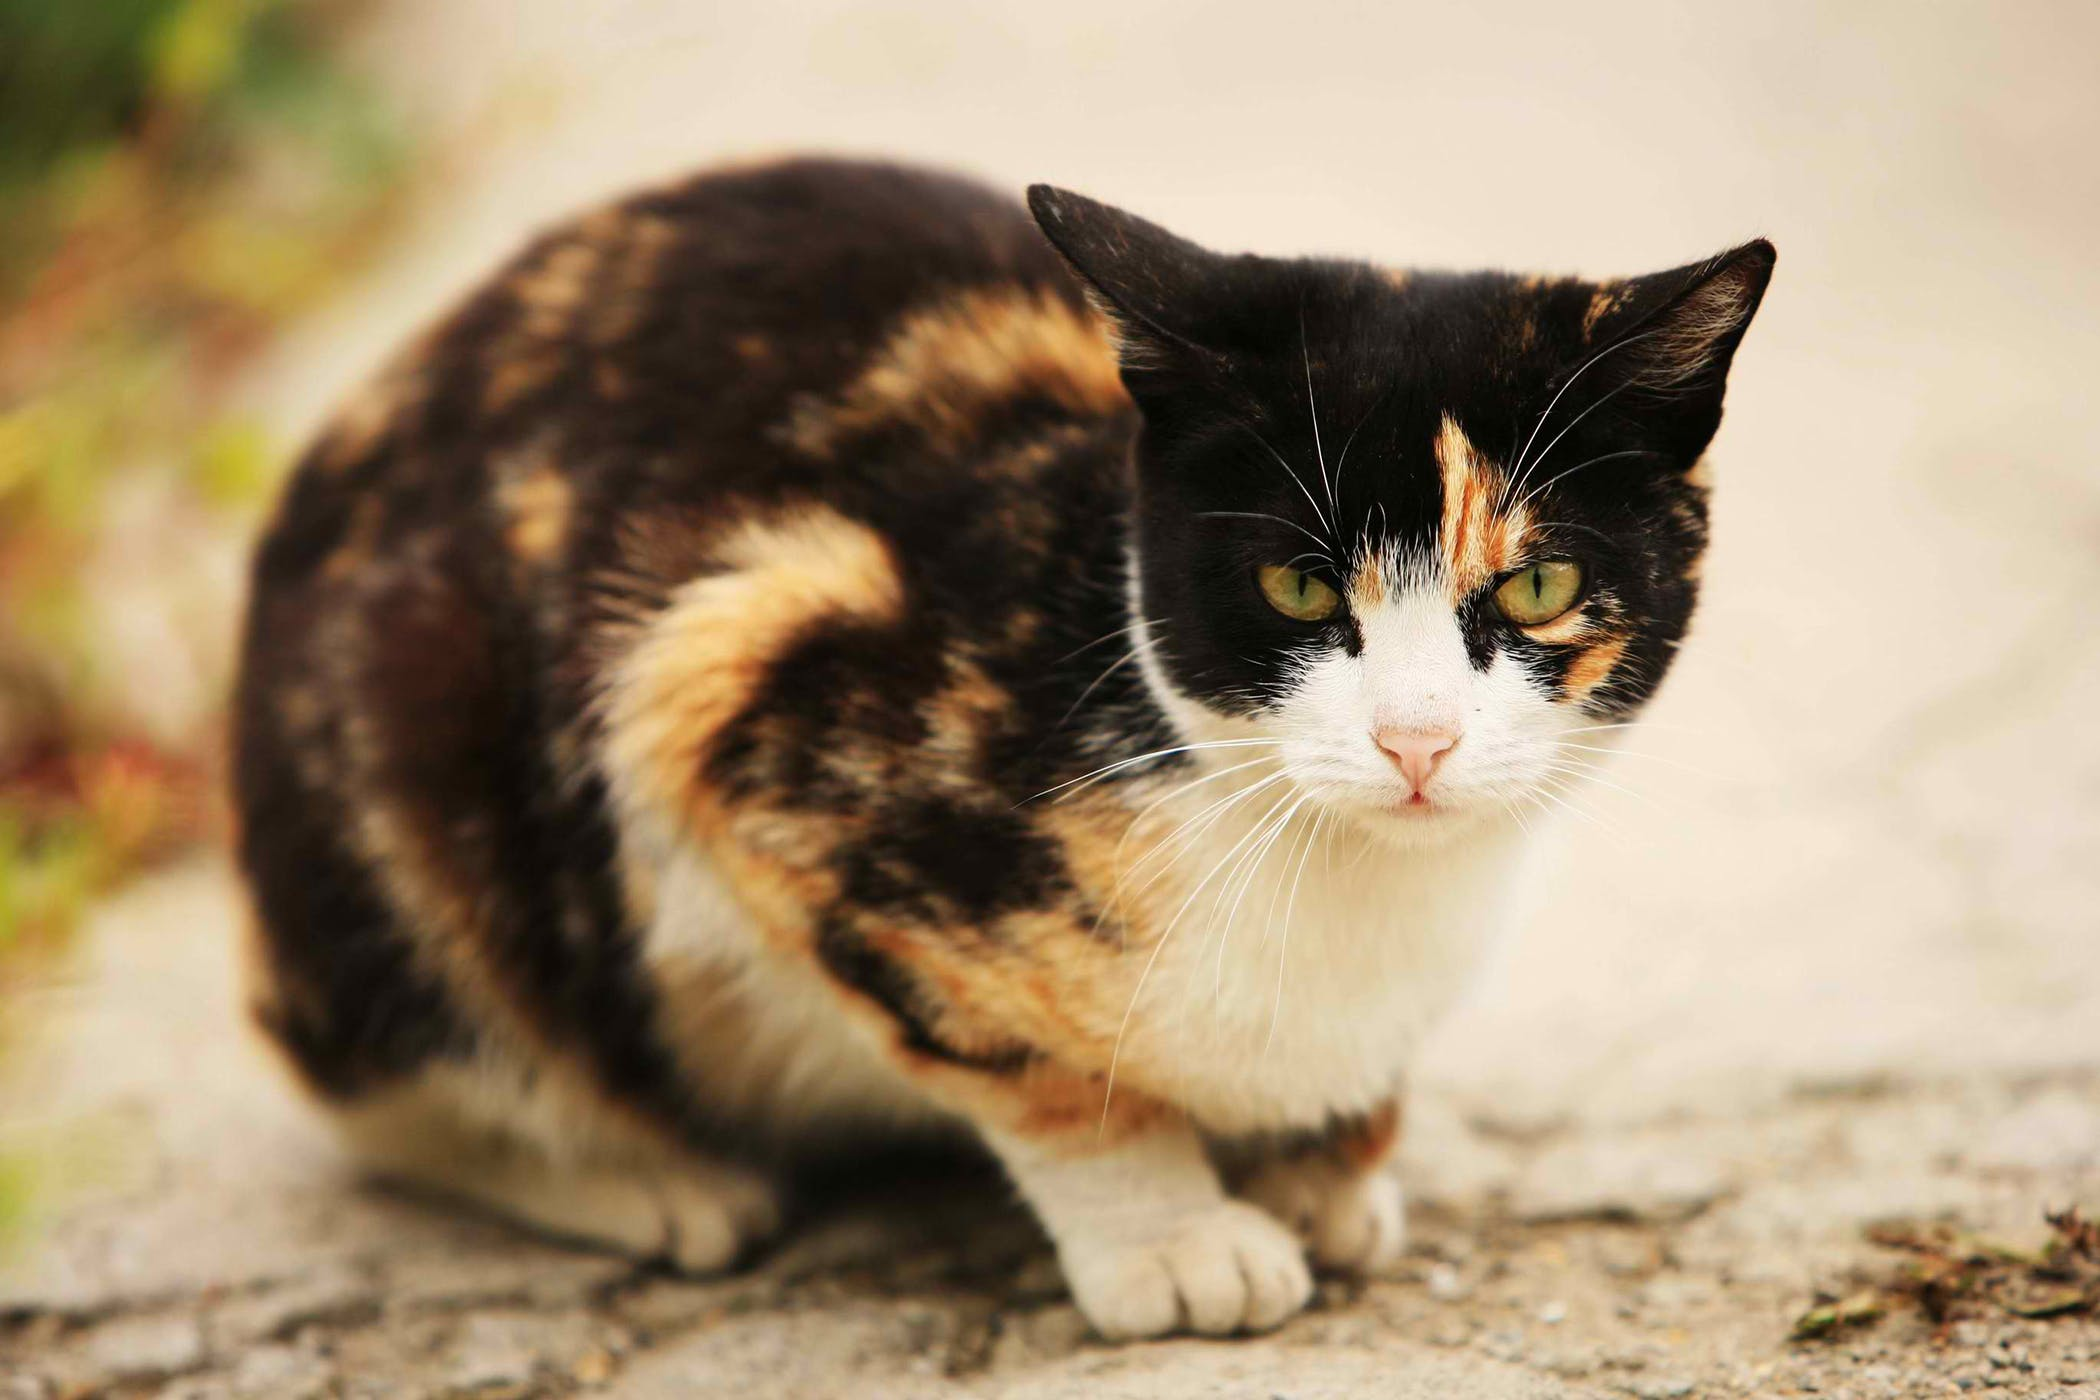 Lung Cancer (Squamous Cell Carcinoma) in Cats